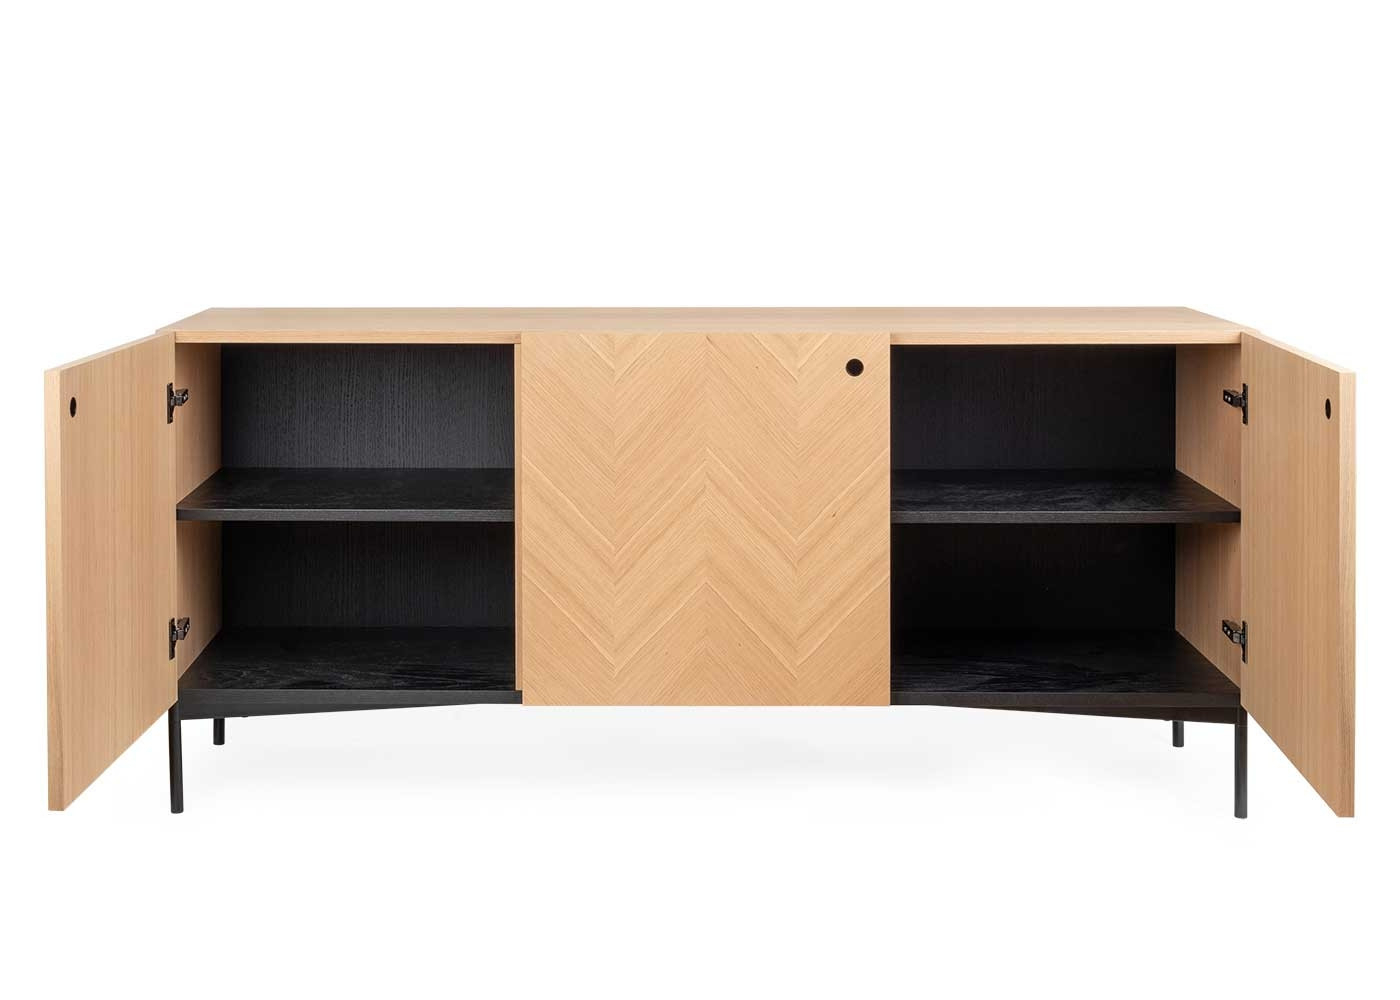 Clifton Sideboard With Regard To Clifton Sideboards (View 4 of 20)